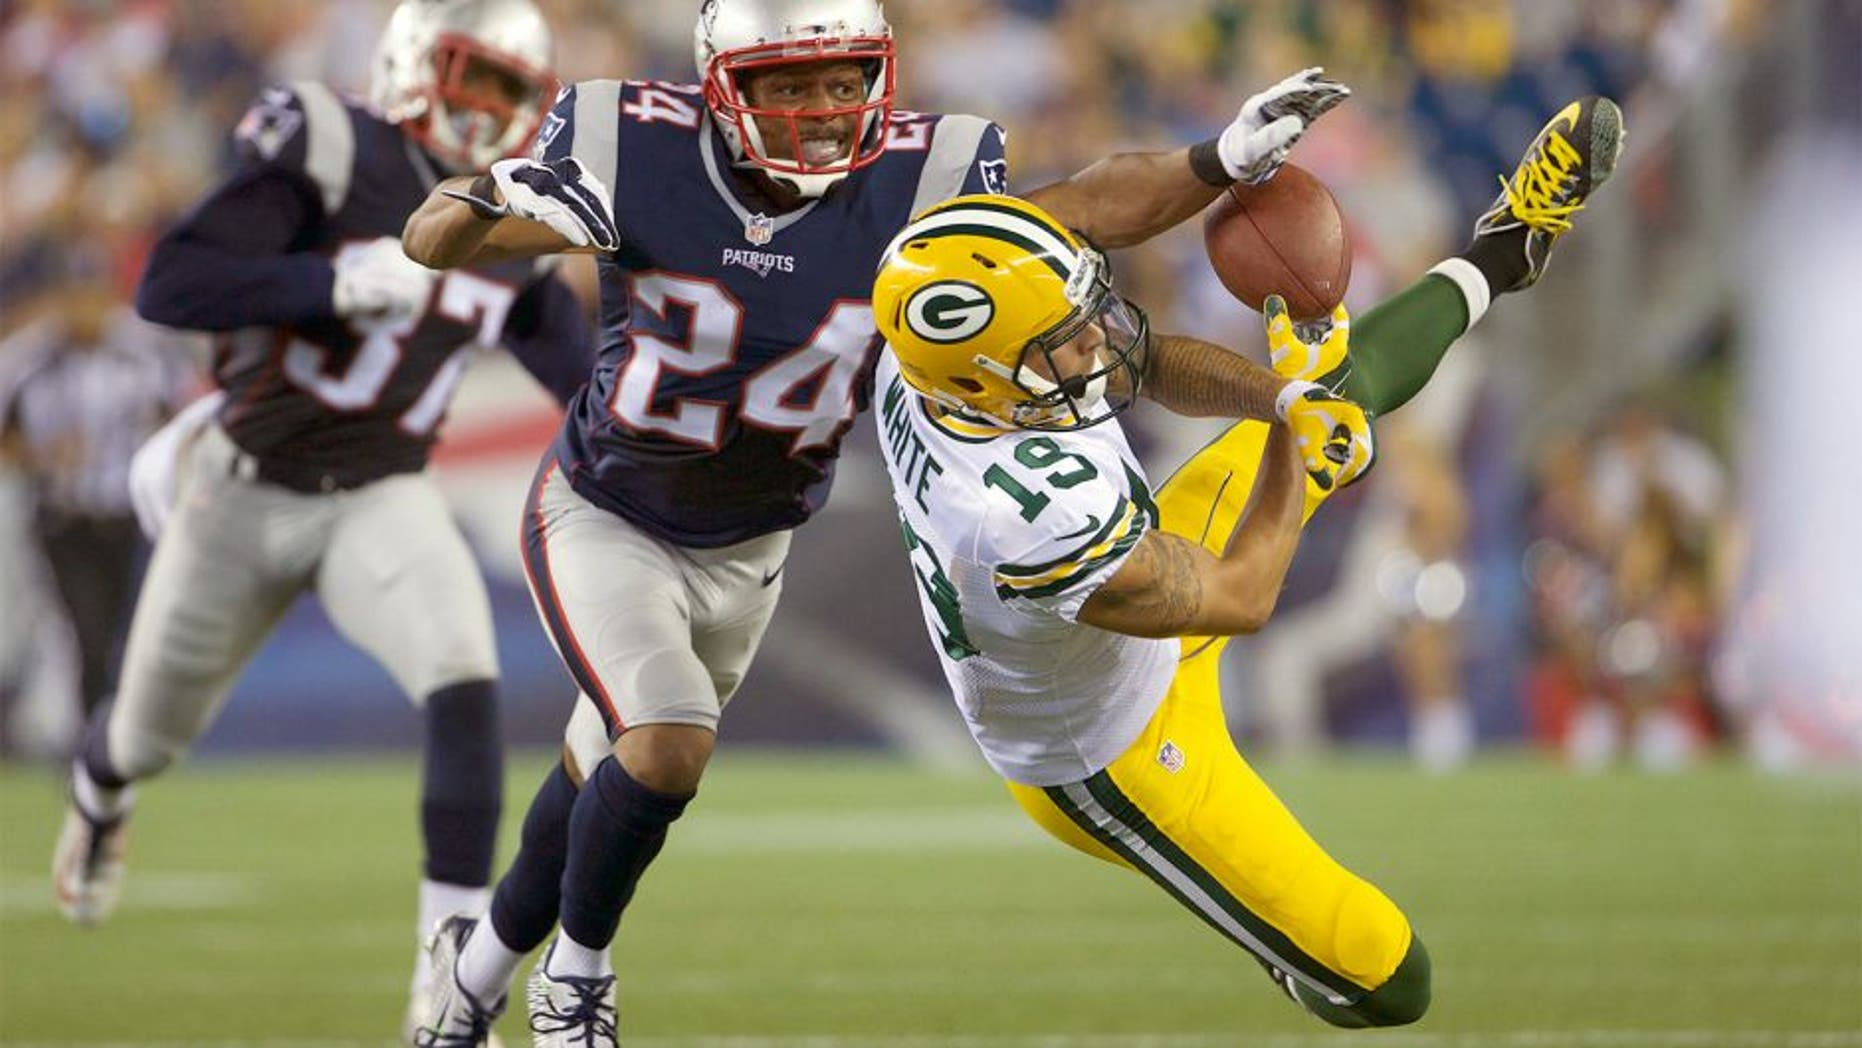 Aug 13, 2015; Foxborough, MA, USA; New England Patriots defensive back Bradley Fletcher (24) defends against Green Bay Packers wide receiver Myles White (19) during the first half in a preseason NFL football game at Gillette Stadium. Mandatory Credit: David Butler II-USA TODAY Sports